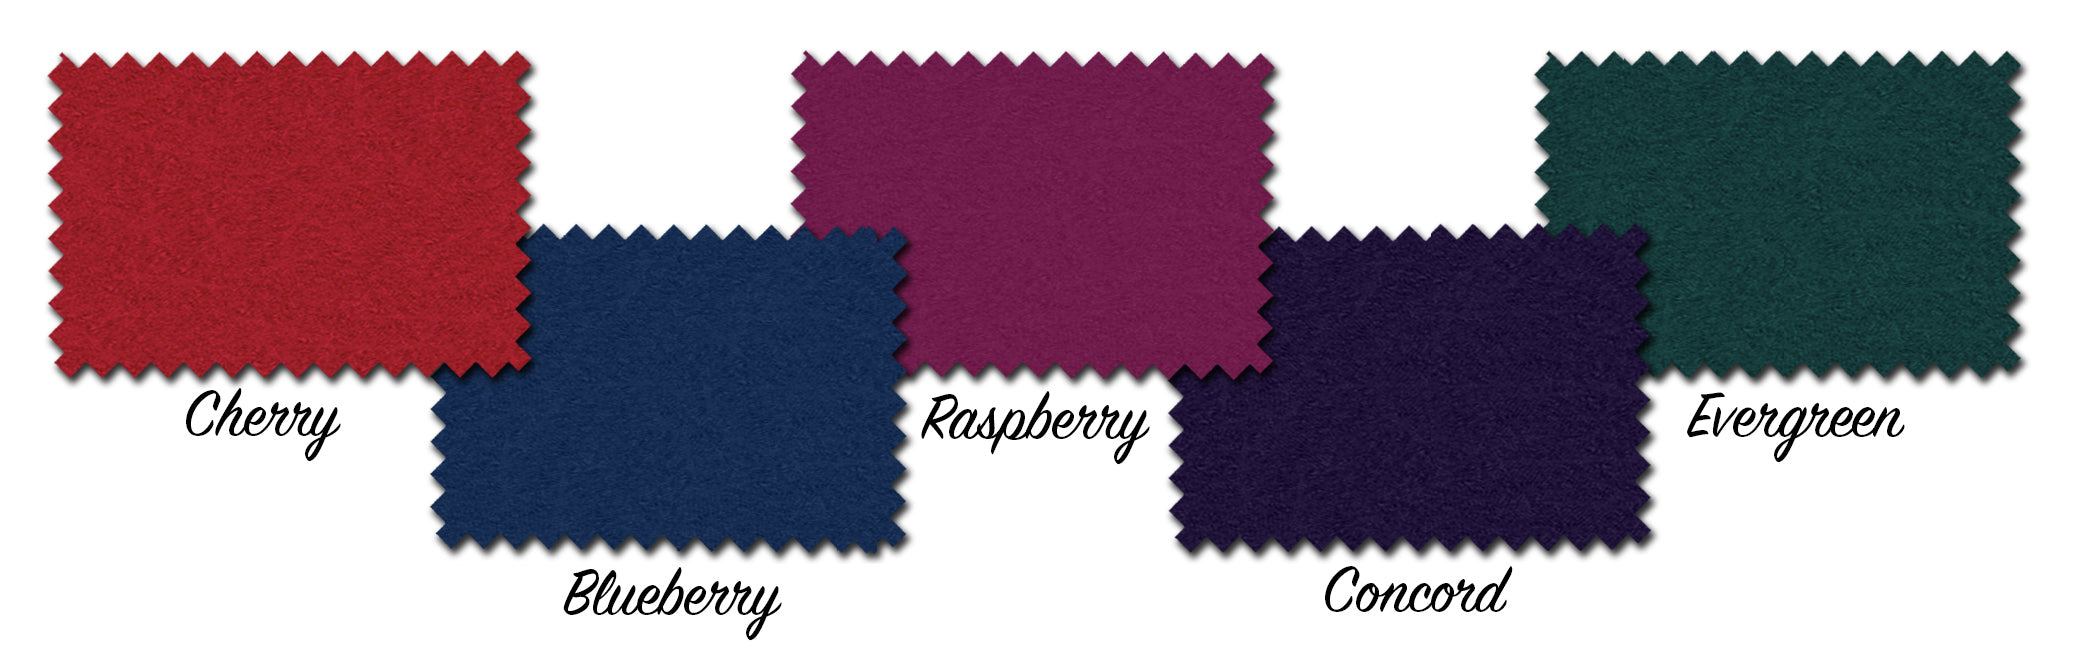 Wool colour swatches